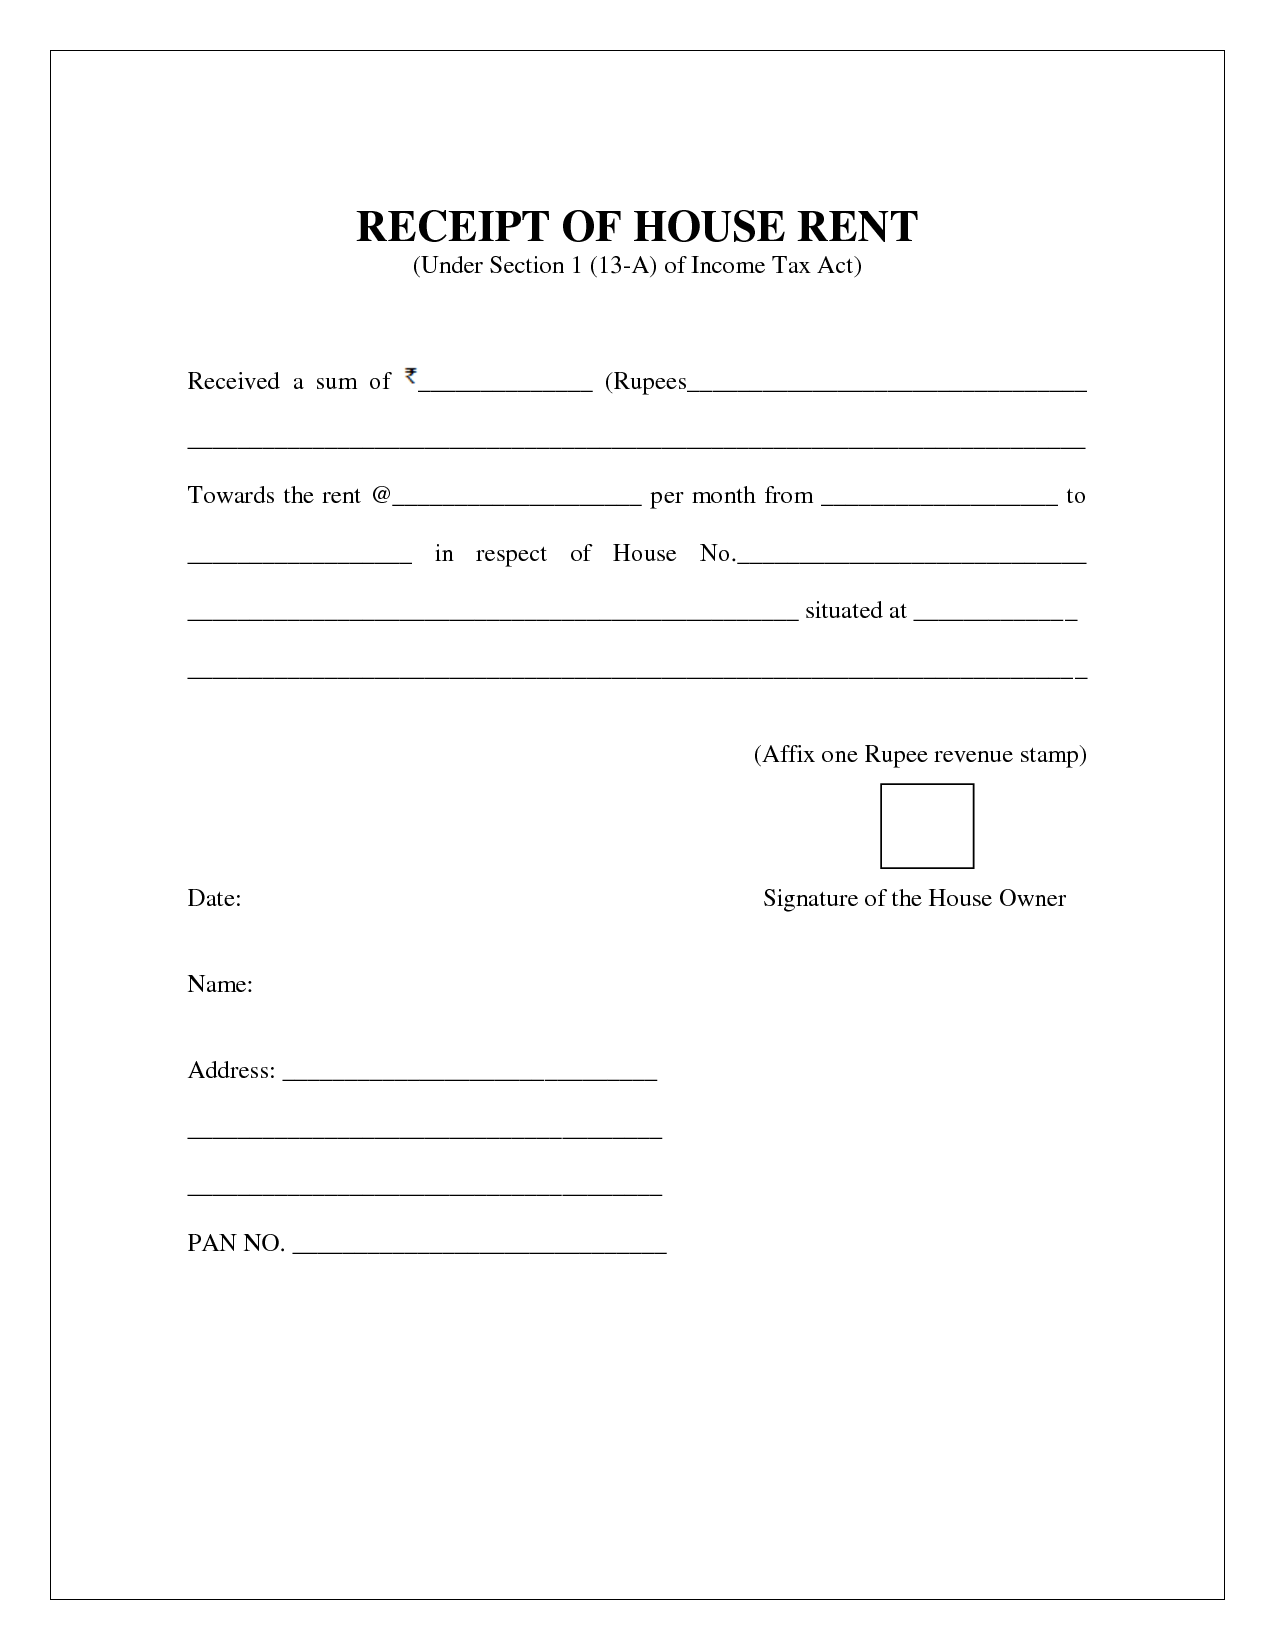 house rental invoice house rent receipt invoice house rental invoice house rent receipt